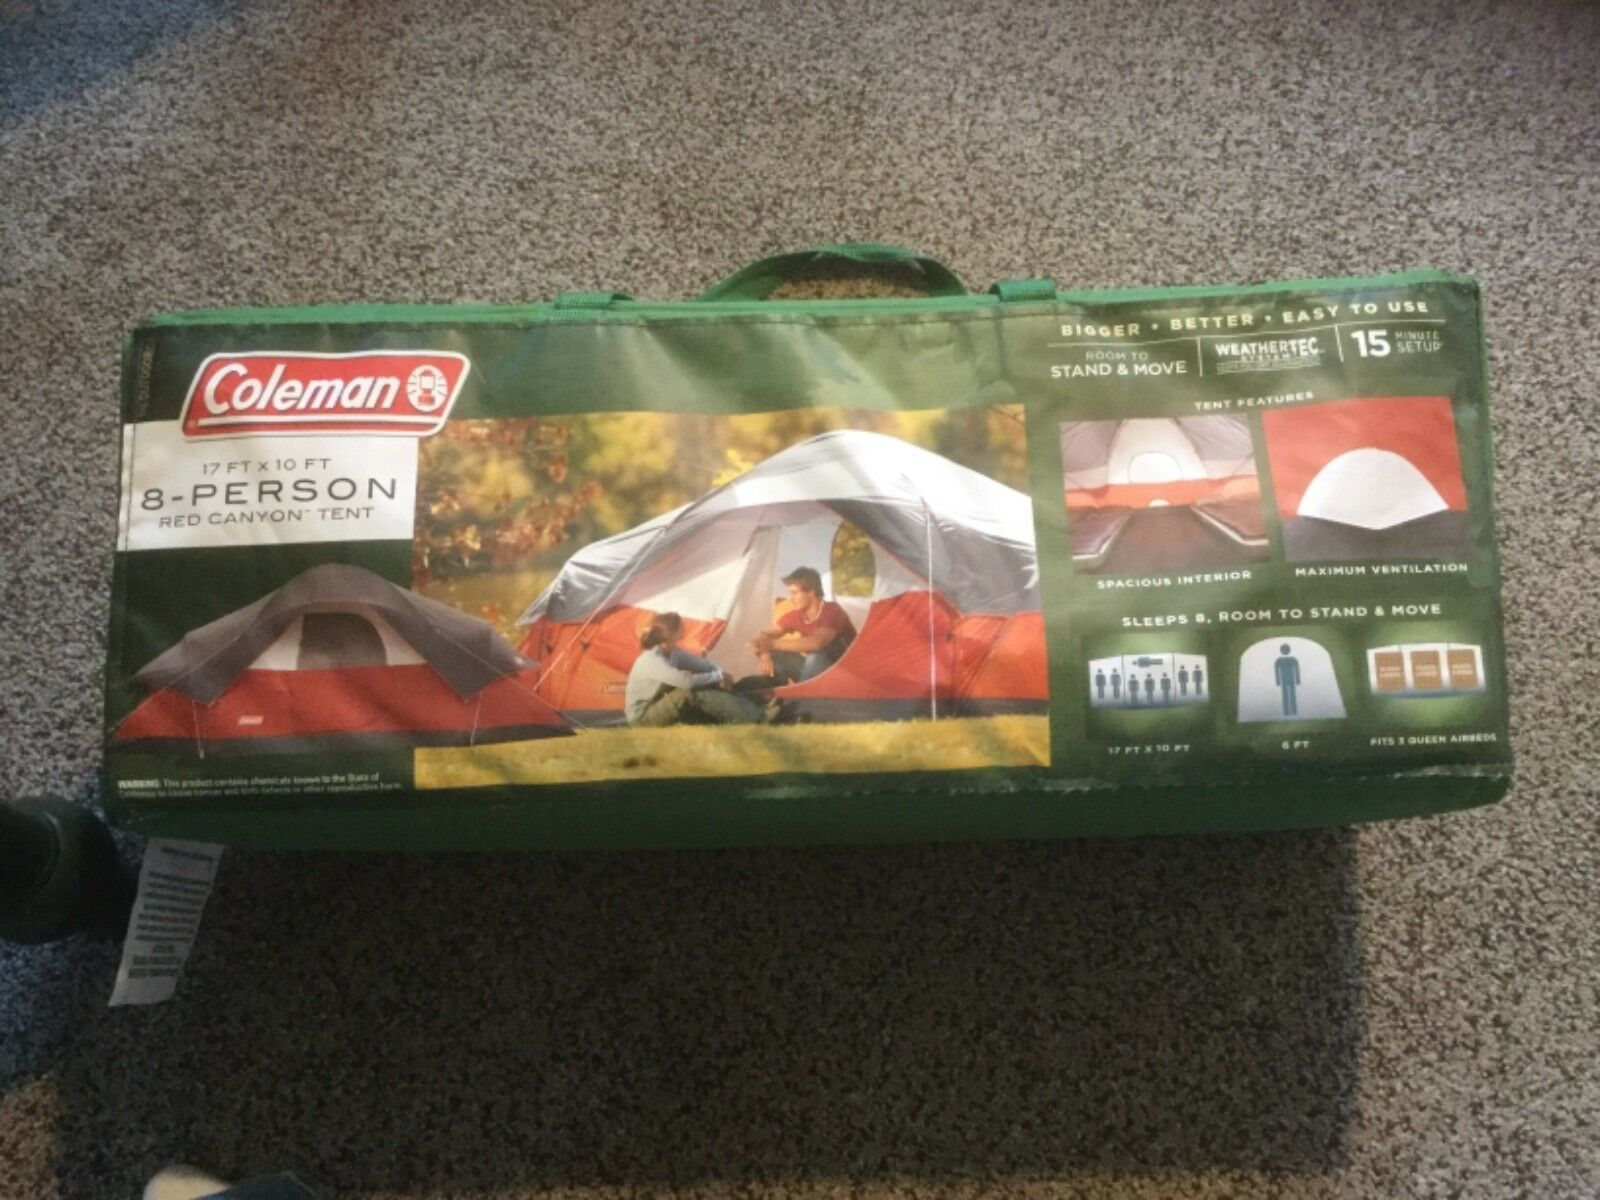 New Coleman 8-Person Red Canyon Tent.  17' x 10'.